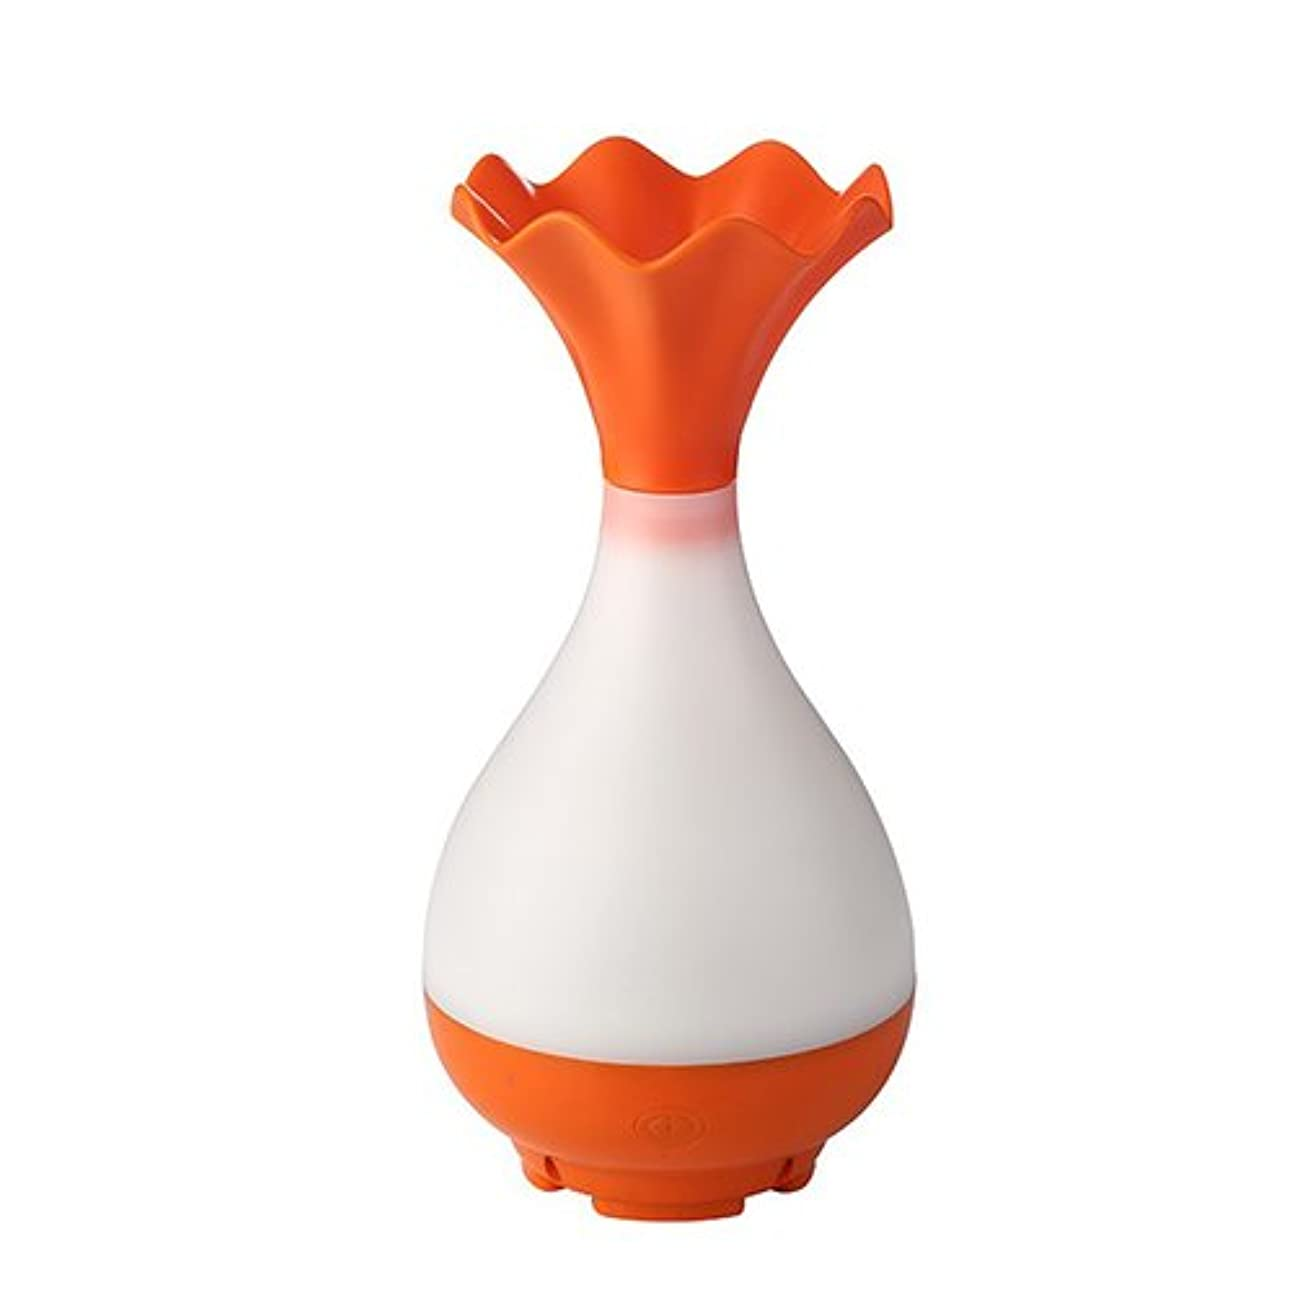 逃げるパーチナシティ倒産Mystic Moments | Orange Vase Bottle USB Aromatherapy Oil Humidifier Diffuser with LED Lighting